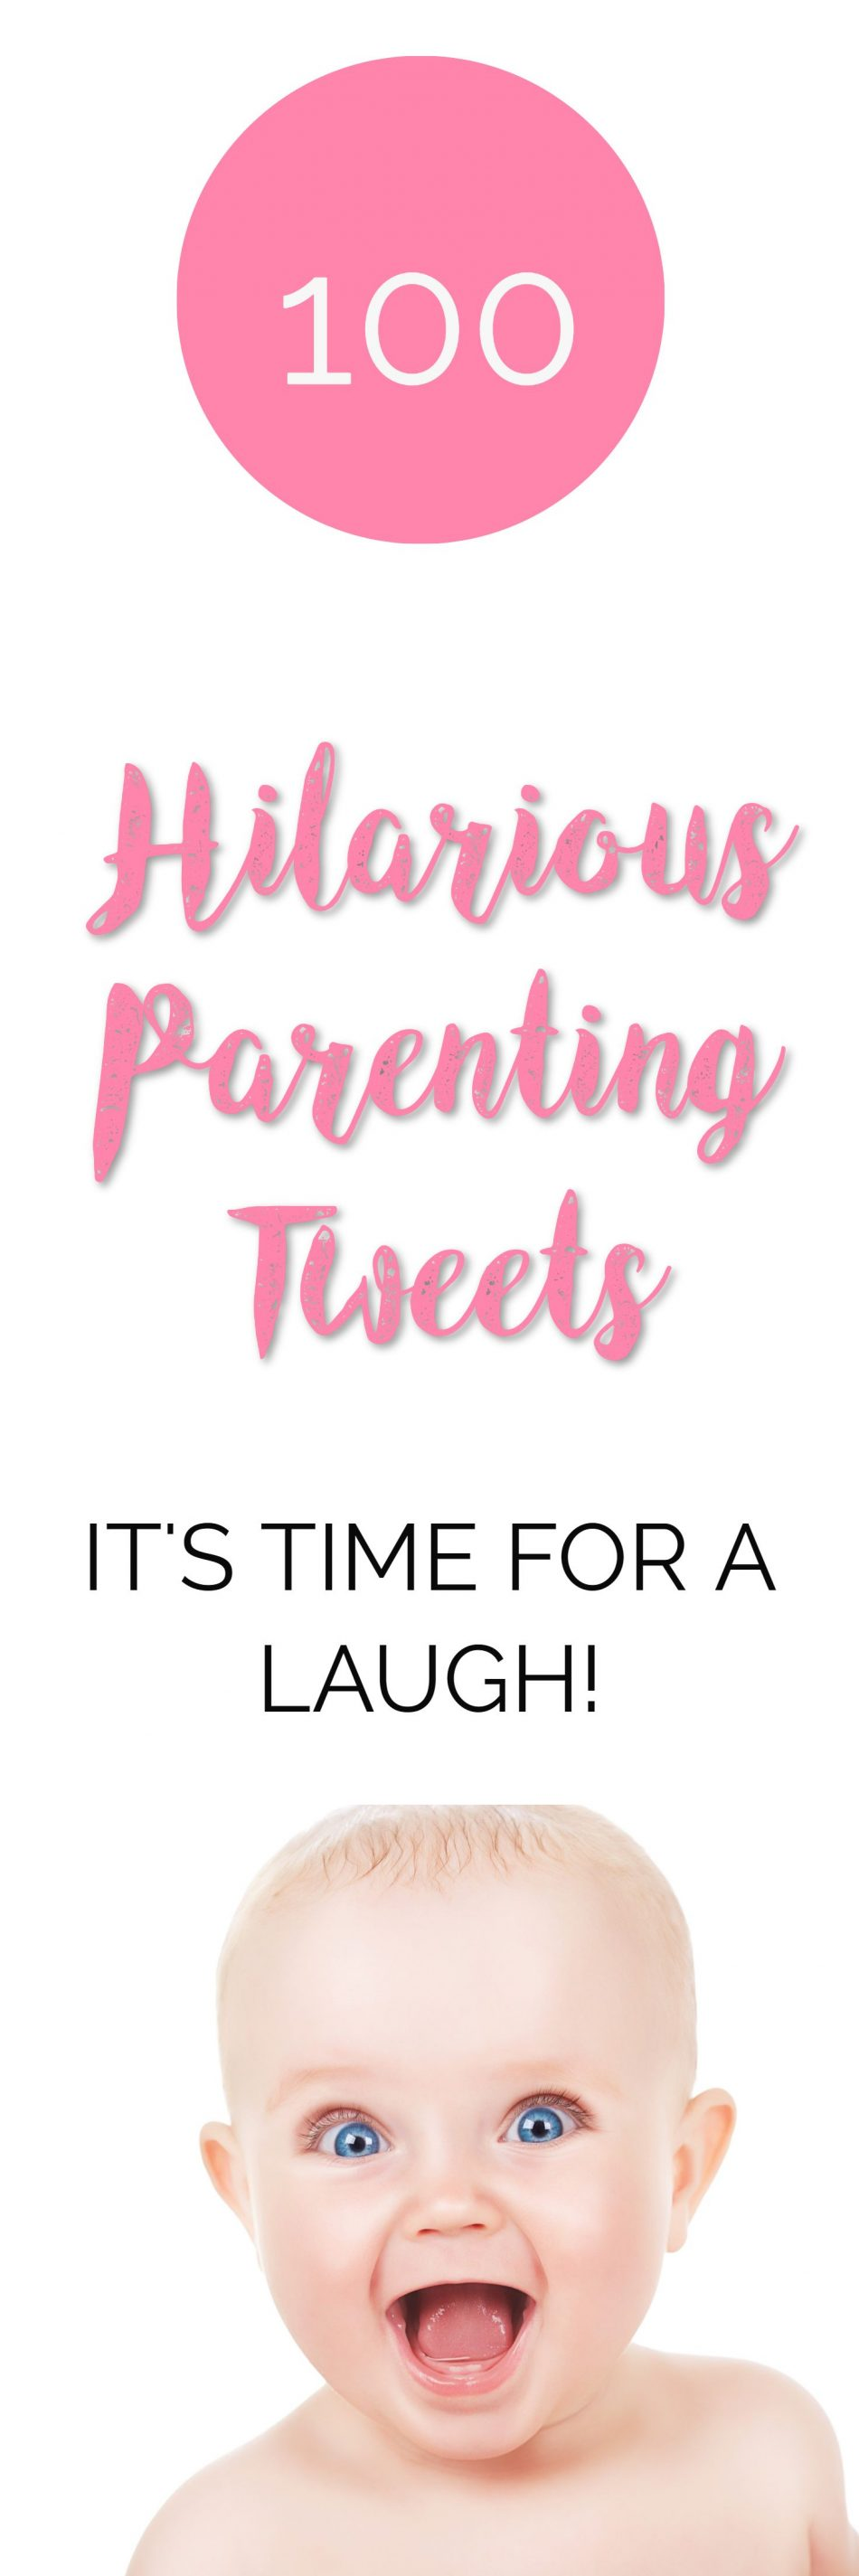 IT'S TIME FOR A LAUGH! Hilariously Funny Parenting Tweets | If you are looking…